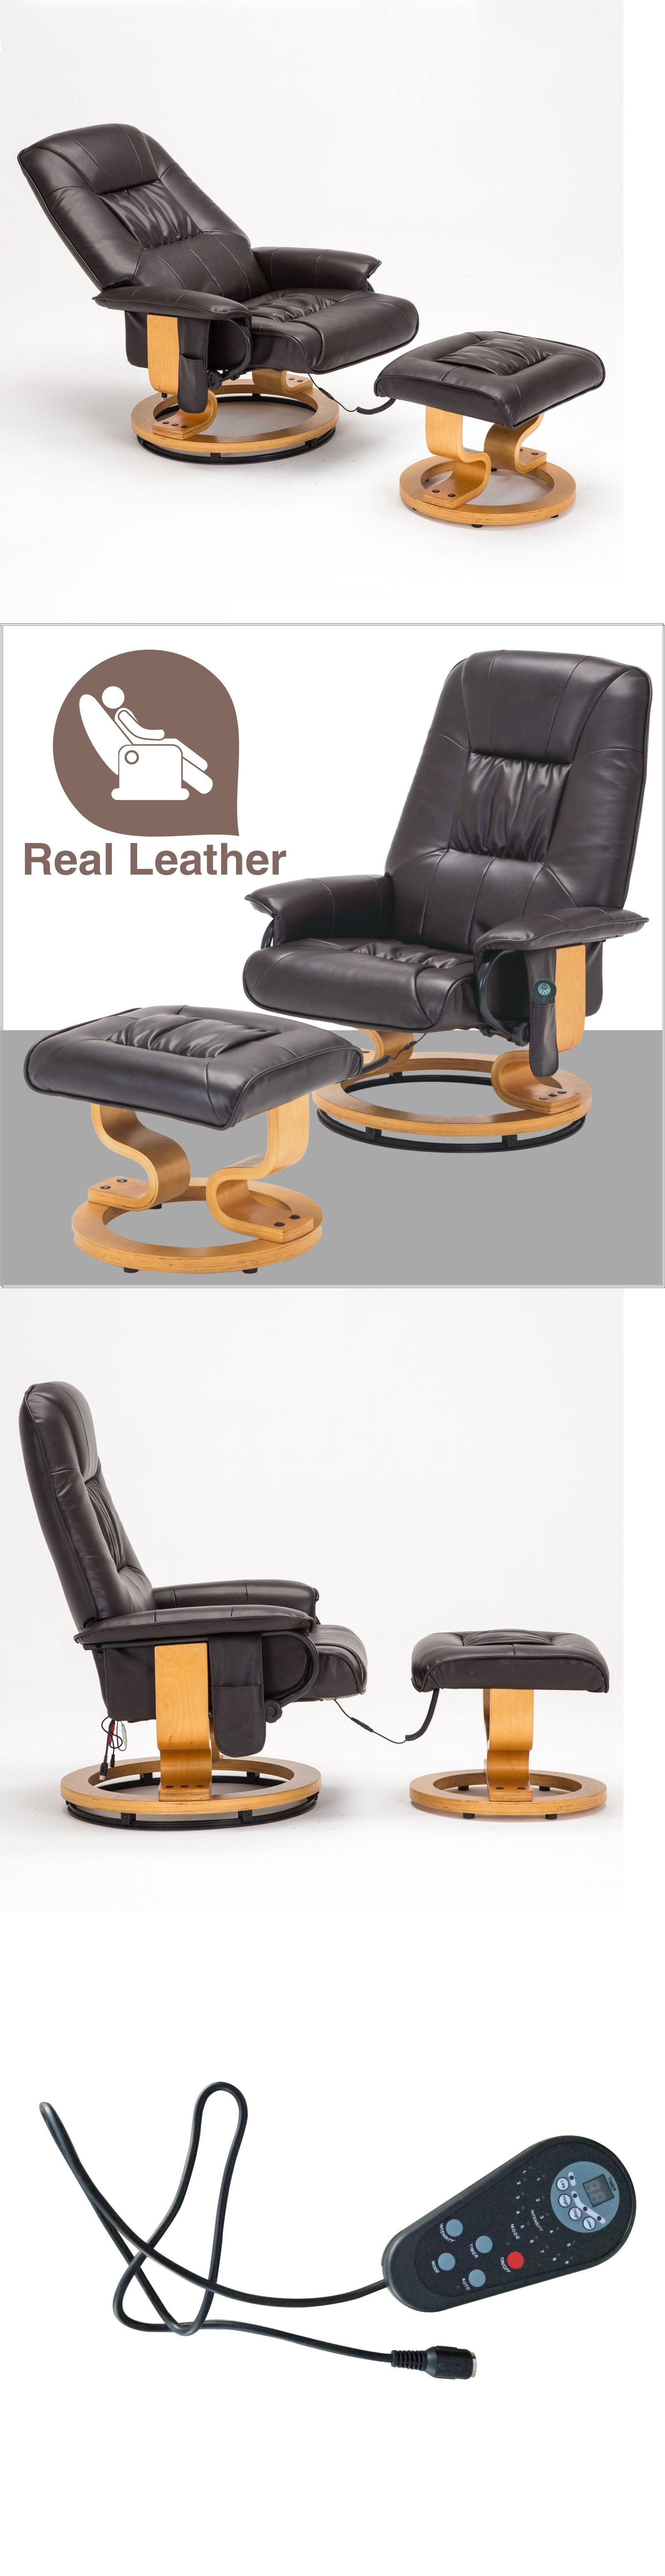 Electric Massage Chairs Real Leather Leisure Massage Chair